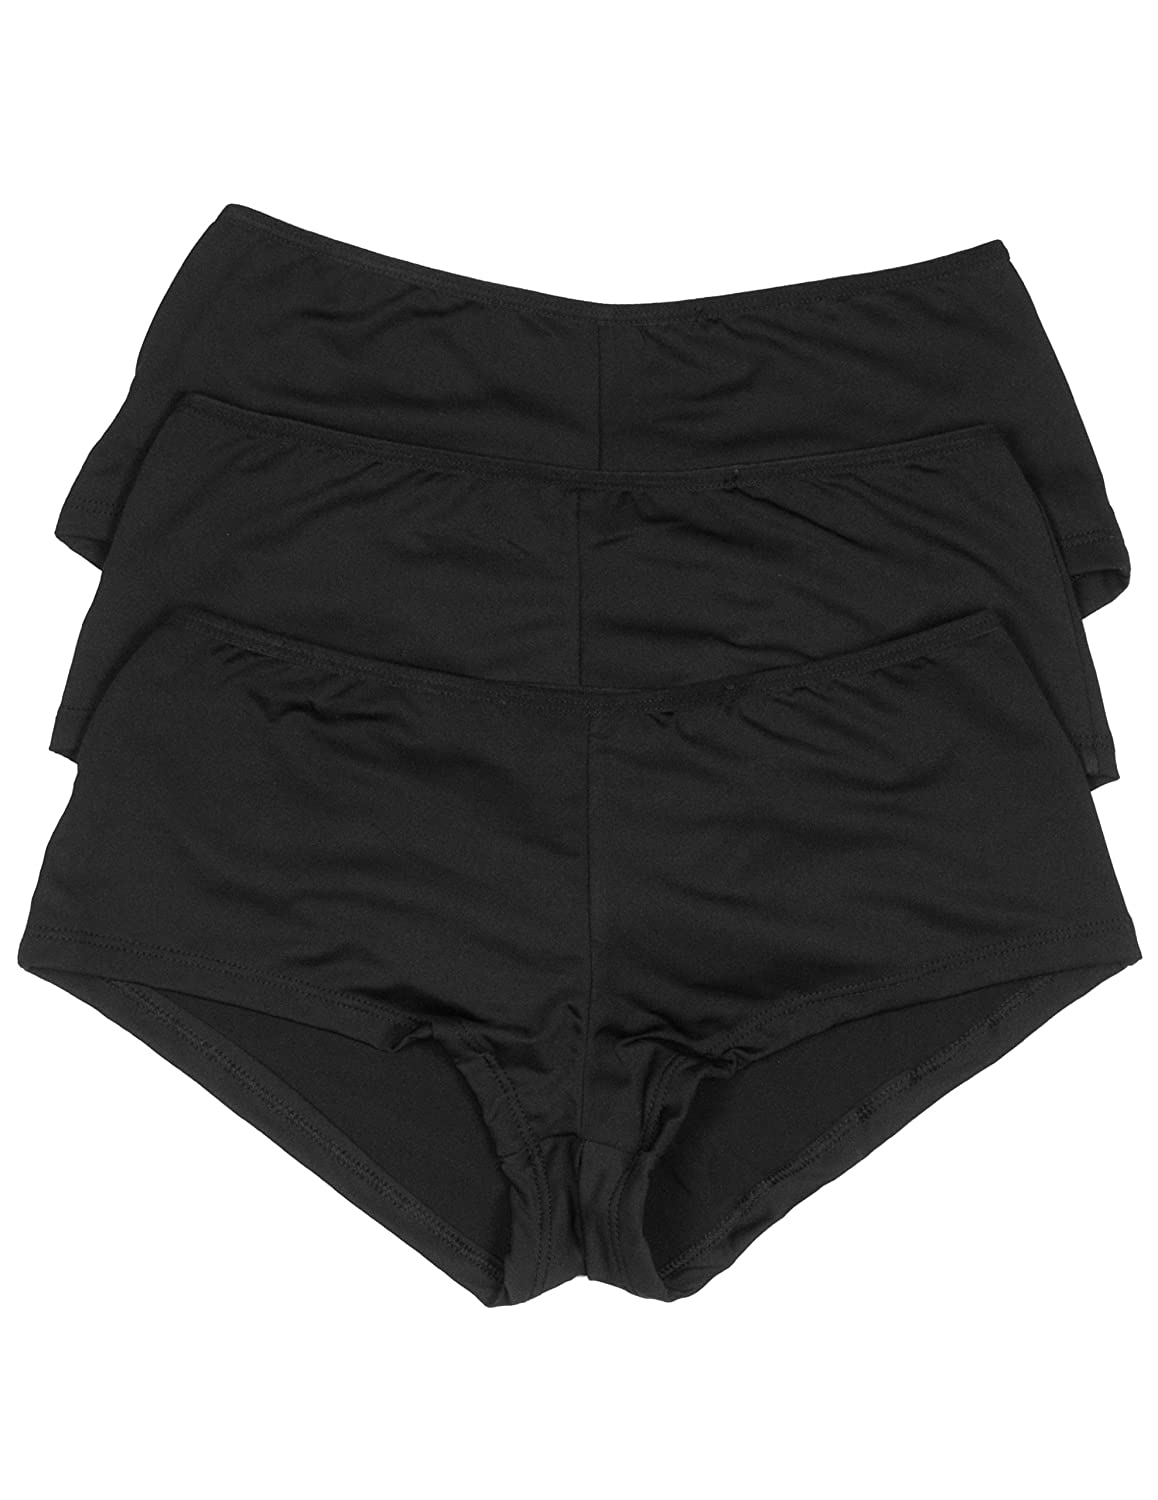 Body Frosting Multi Pack Caged Boy Shorts